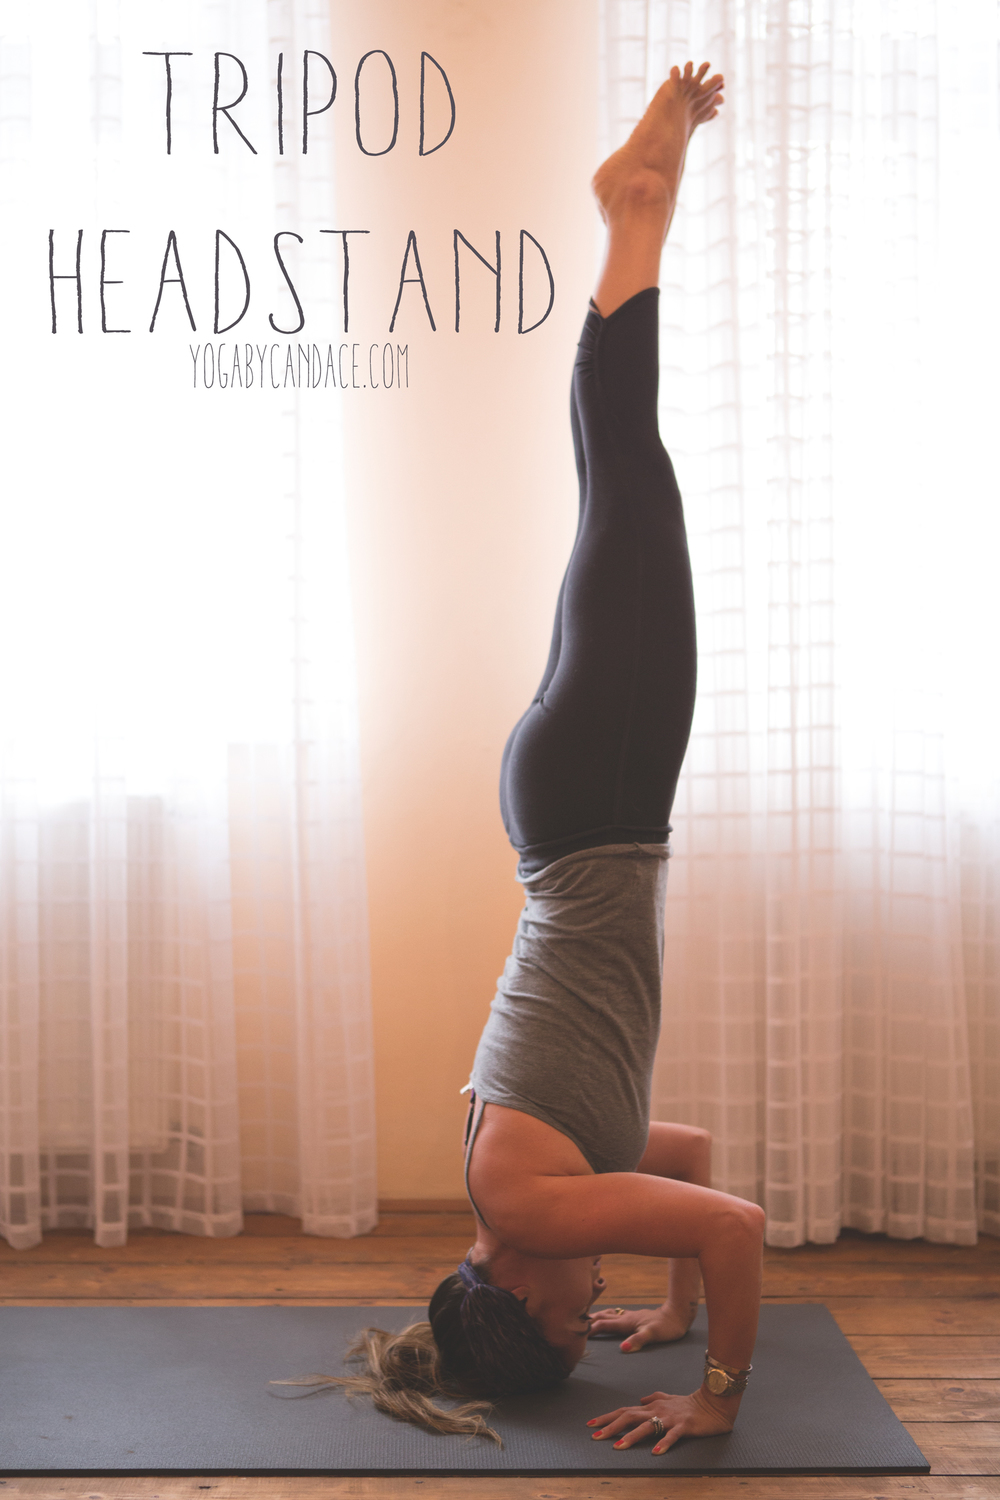 Pin it! Tripod headstand. Wearing: FP Movement leggings, Sweaty Betty headband. Using: Black mat pro.